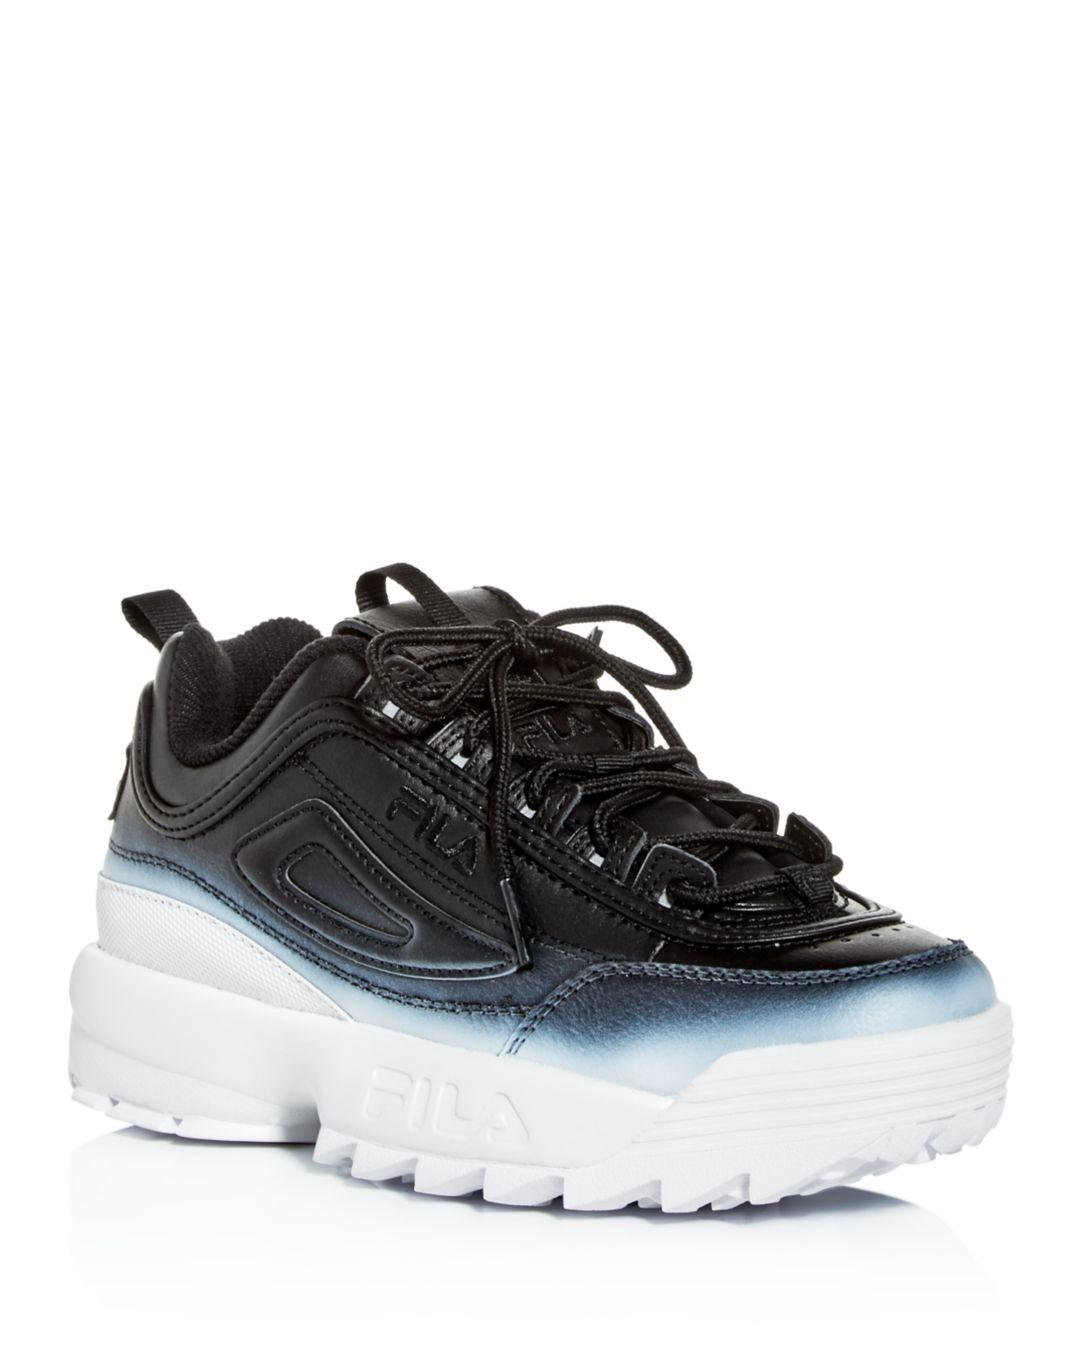 Details about Fila Mens Disruptor ll Low Top Lace Up Fashion Sneakers, Black, Size 6.5